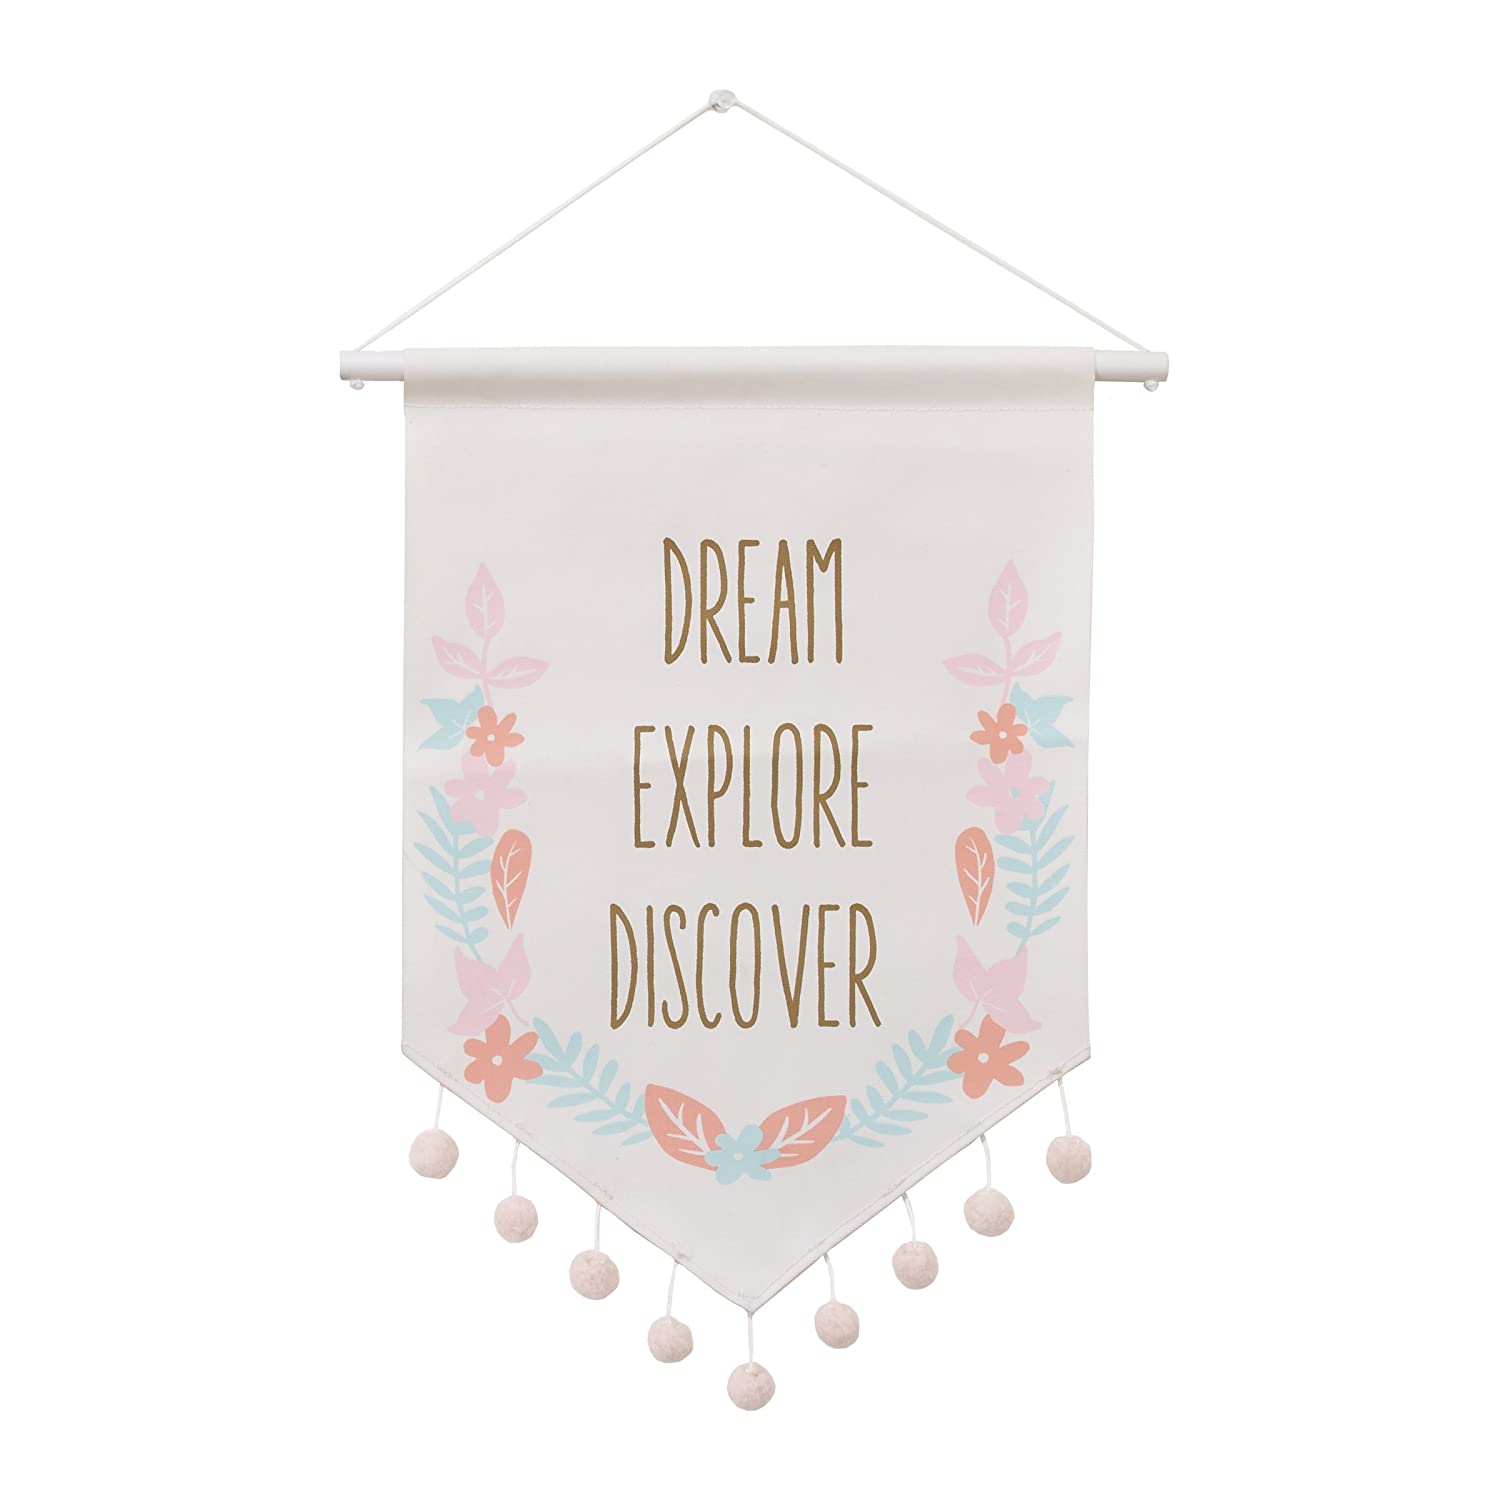 Carter's Woodland Meadow Dream/Explore/ Discover Floral Hanging Wall Banner Decor/Pink/Aqua/White Crown Crafts Infant Products 3190191